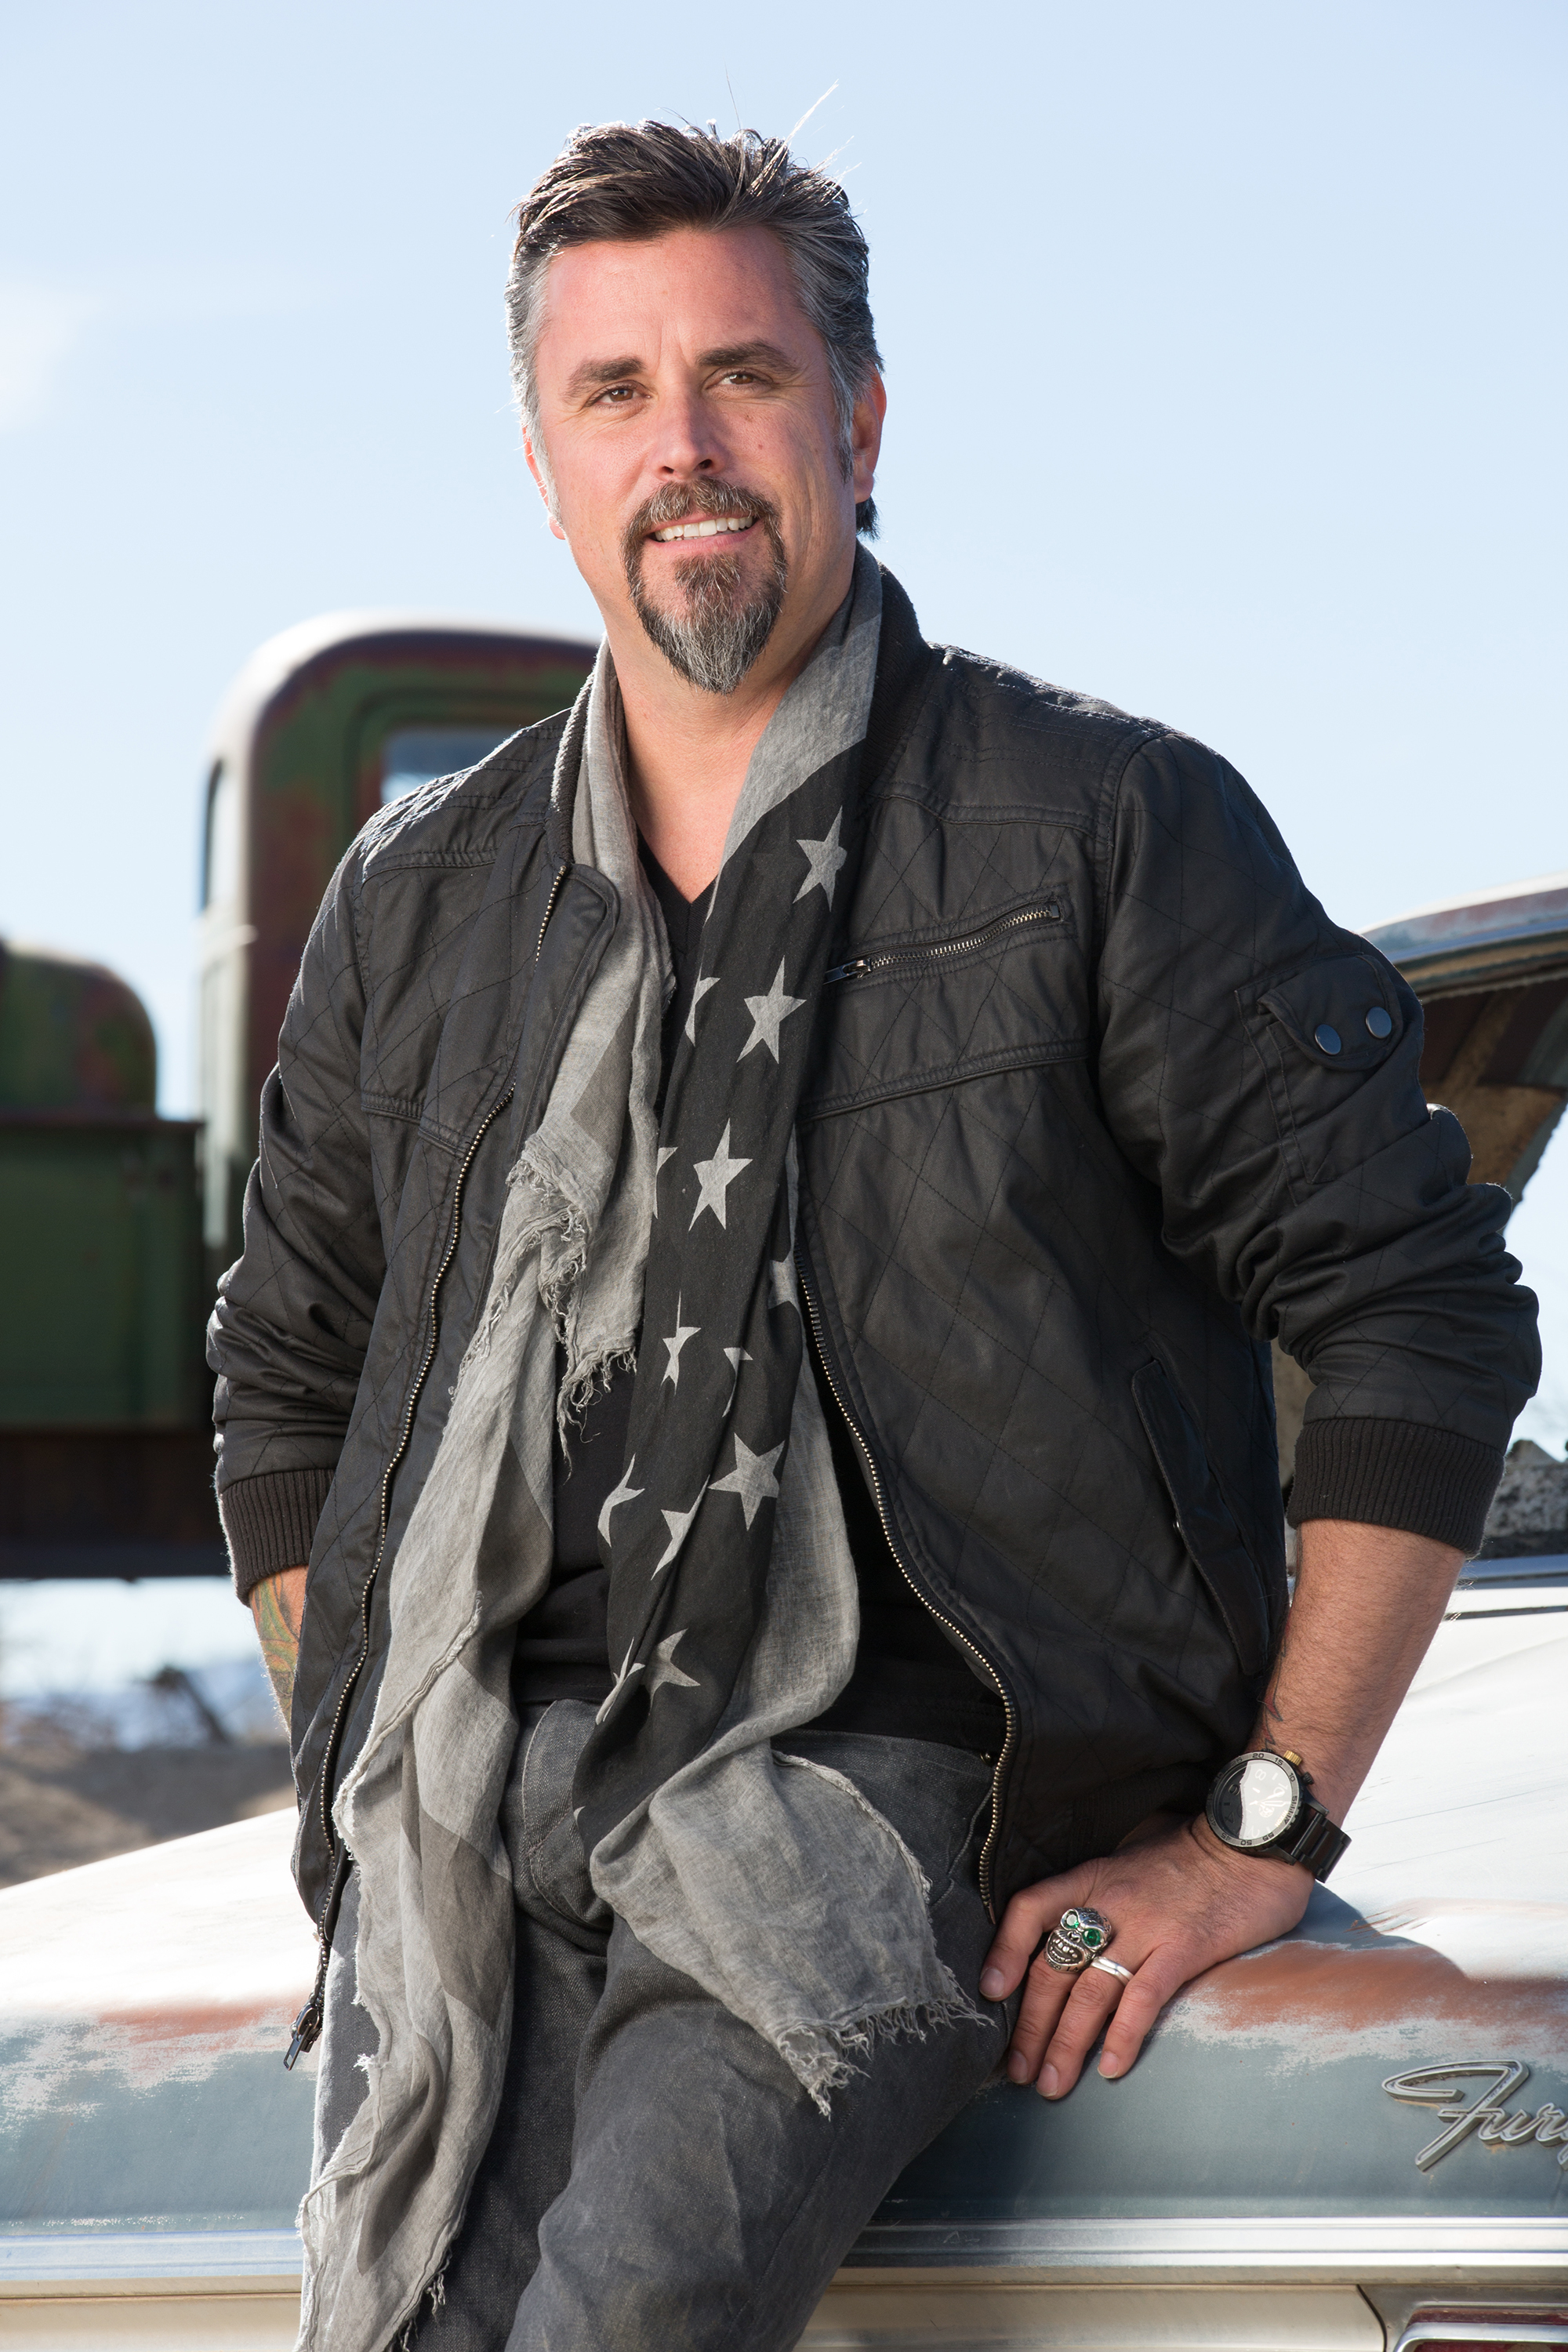 Richard Rawlings net worth 2018 – geomatique2013